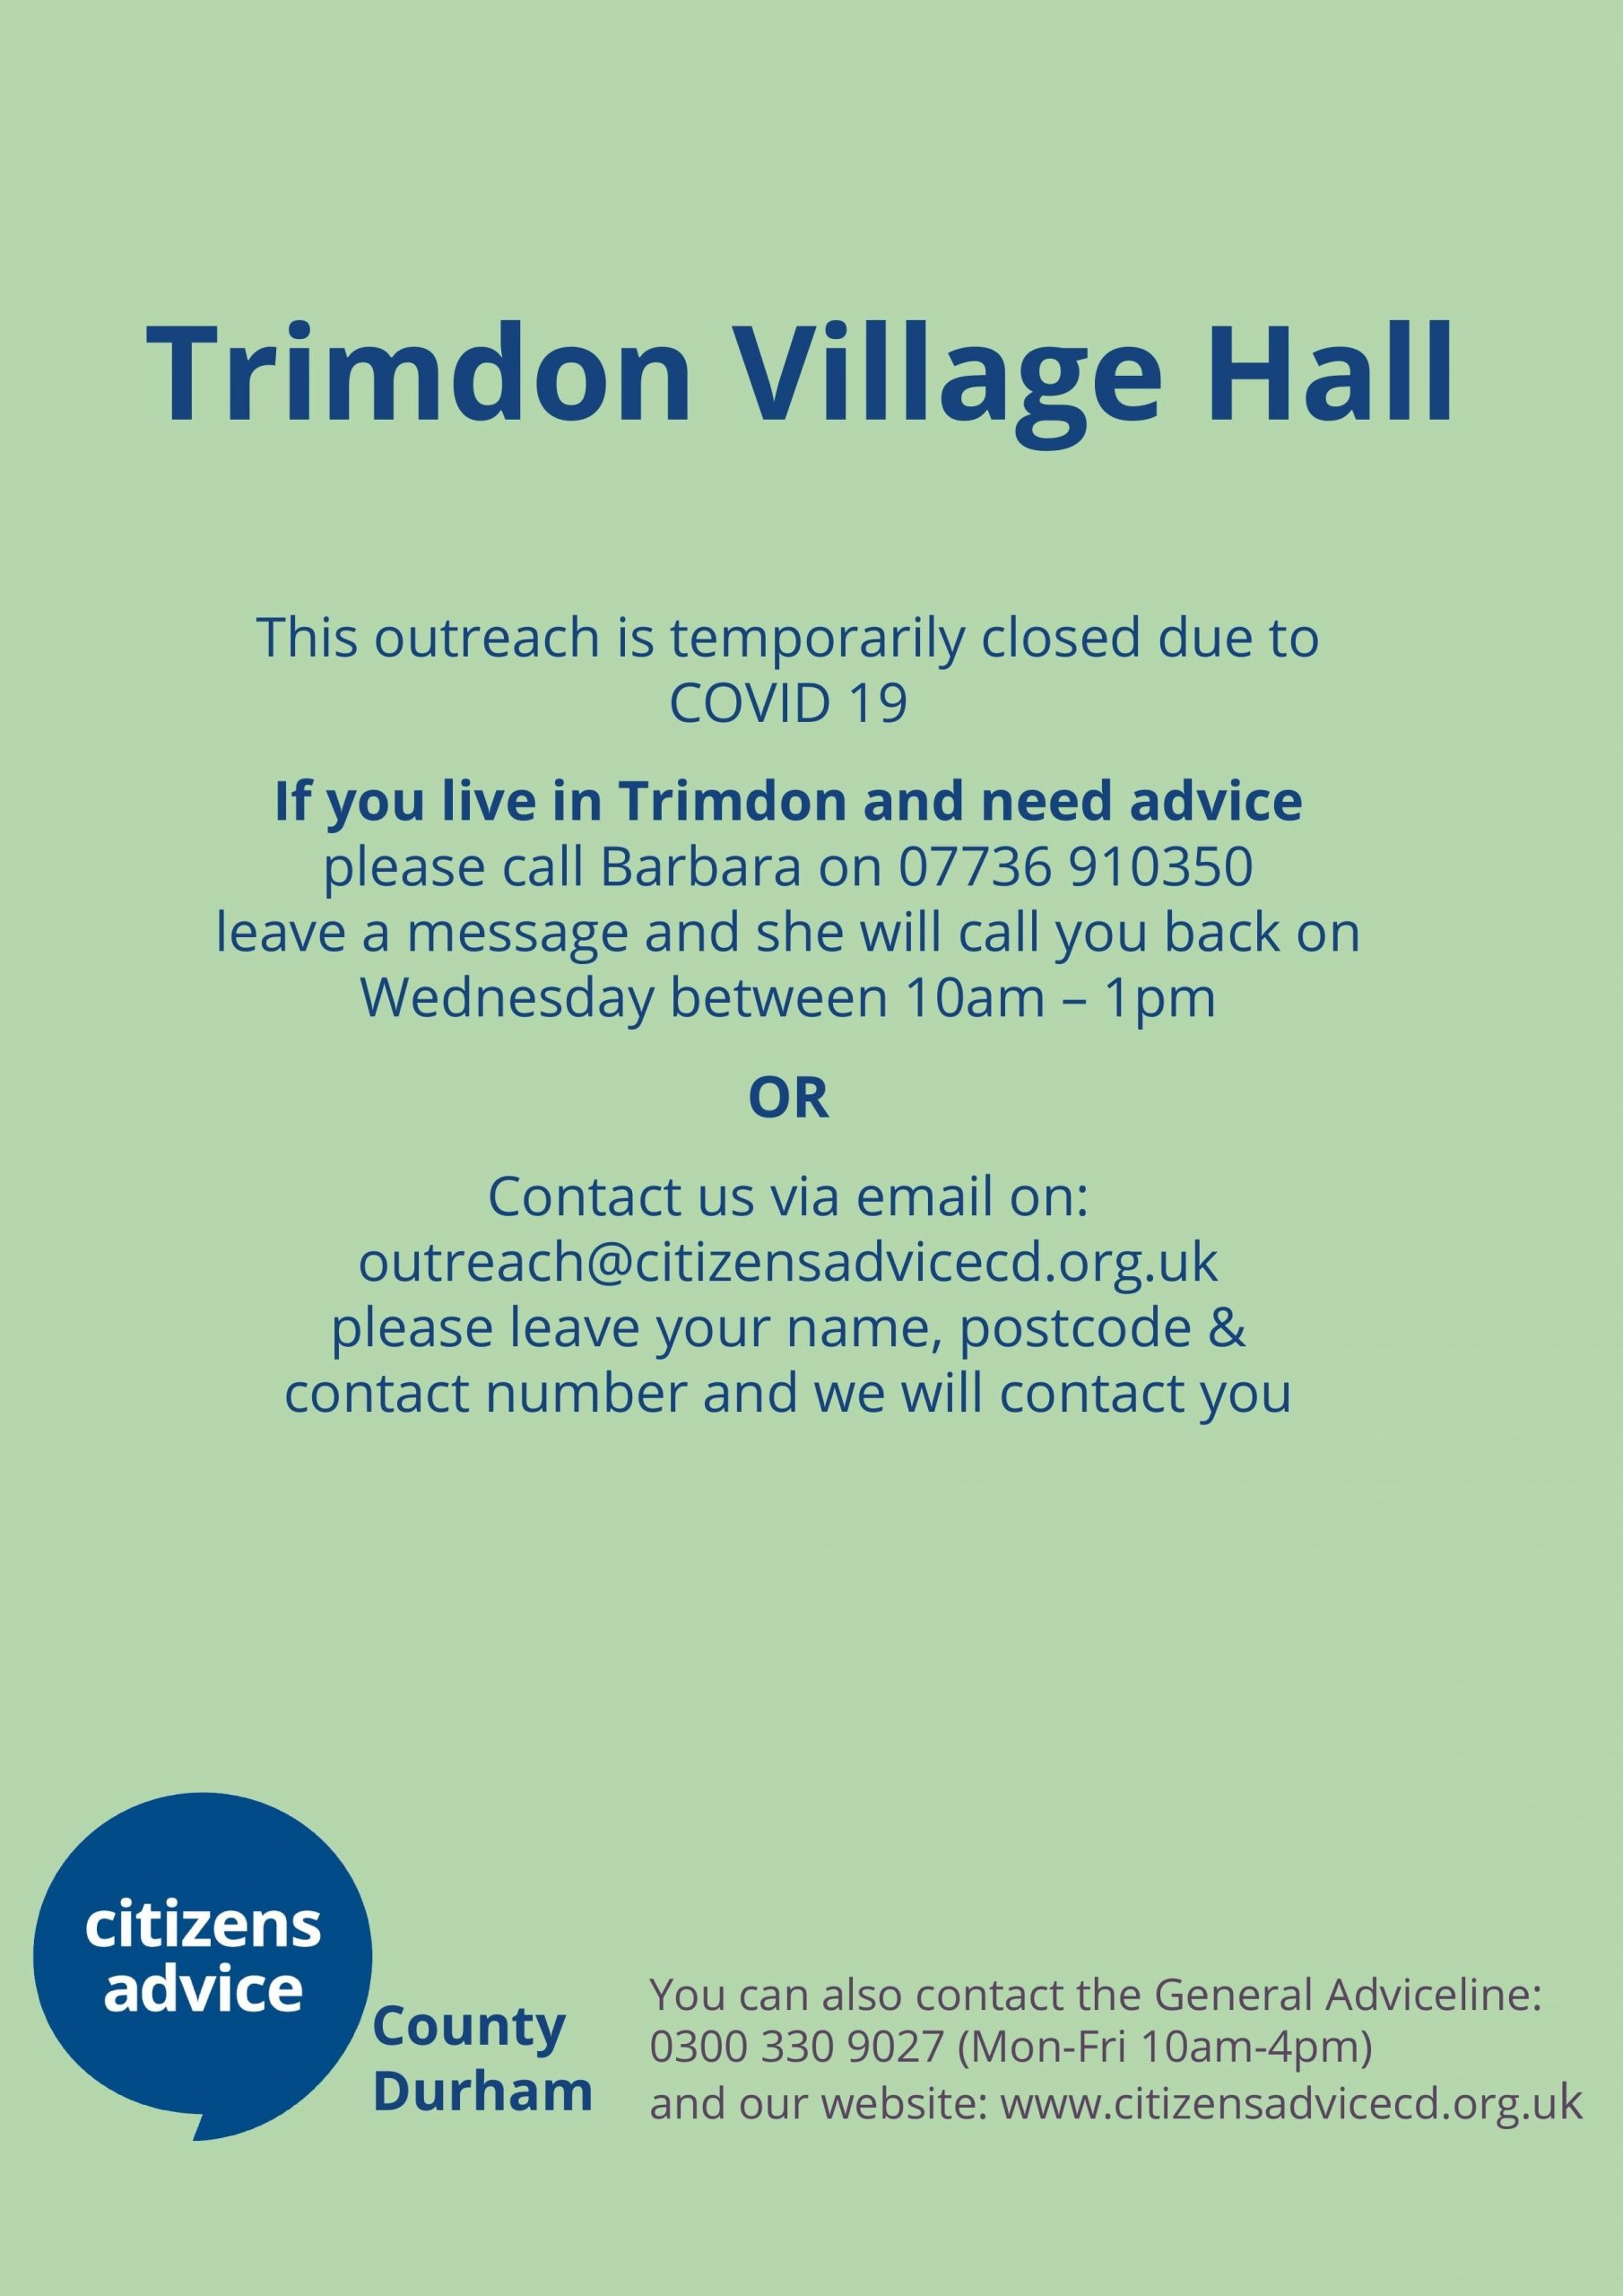 Trimdon Outreach – Outreach closed but please call